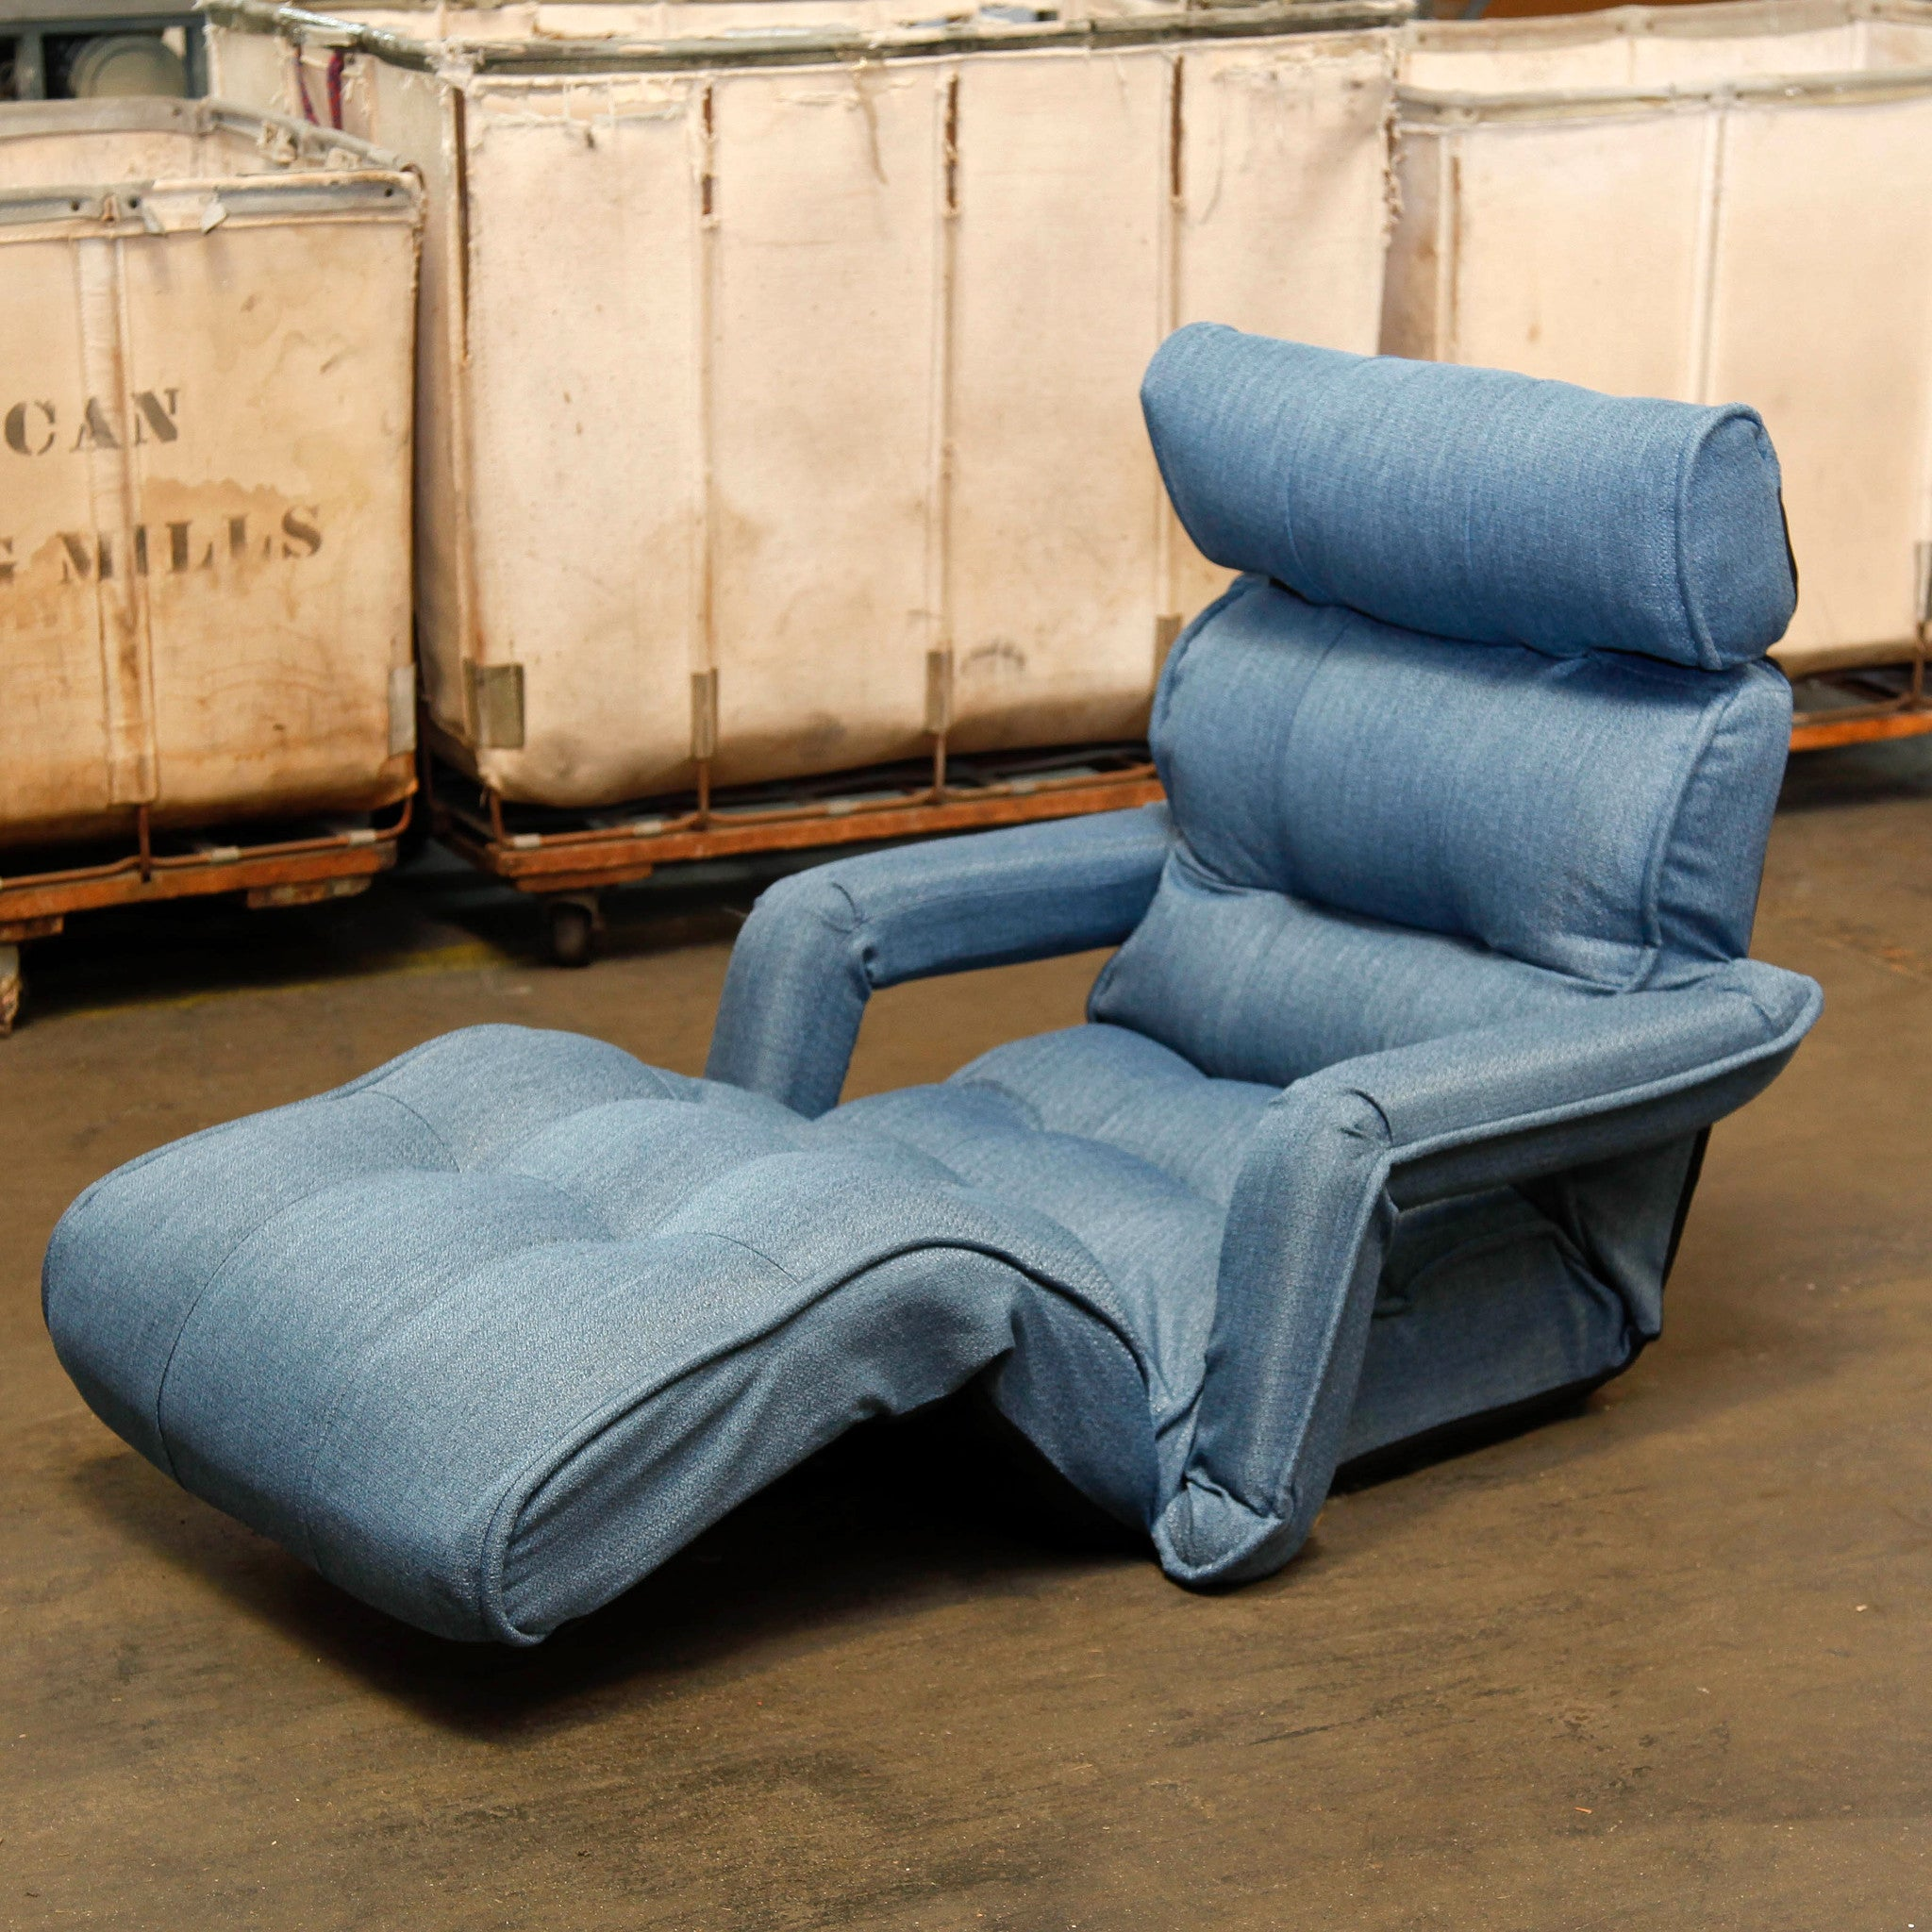 Lovely Pro Floor Sofa Chair Recliner With Armrest, Dusty Blue Soft Fabric